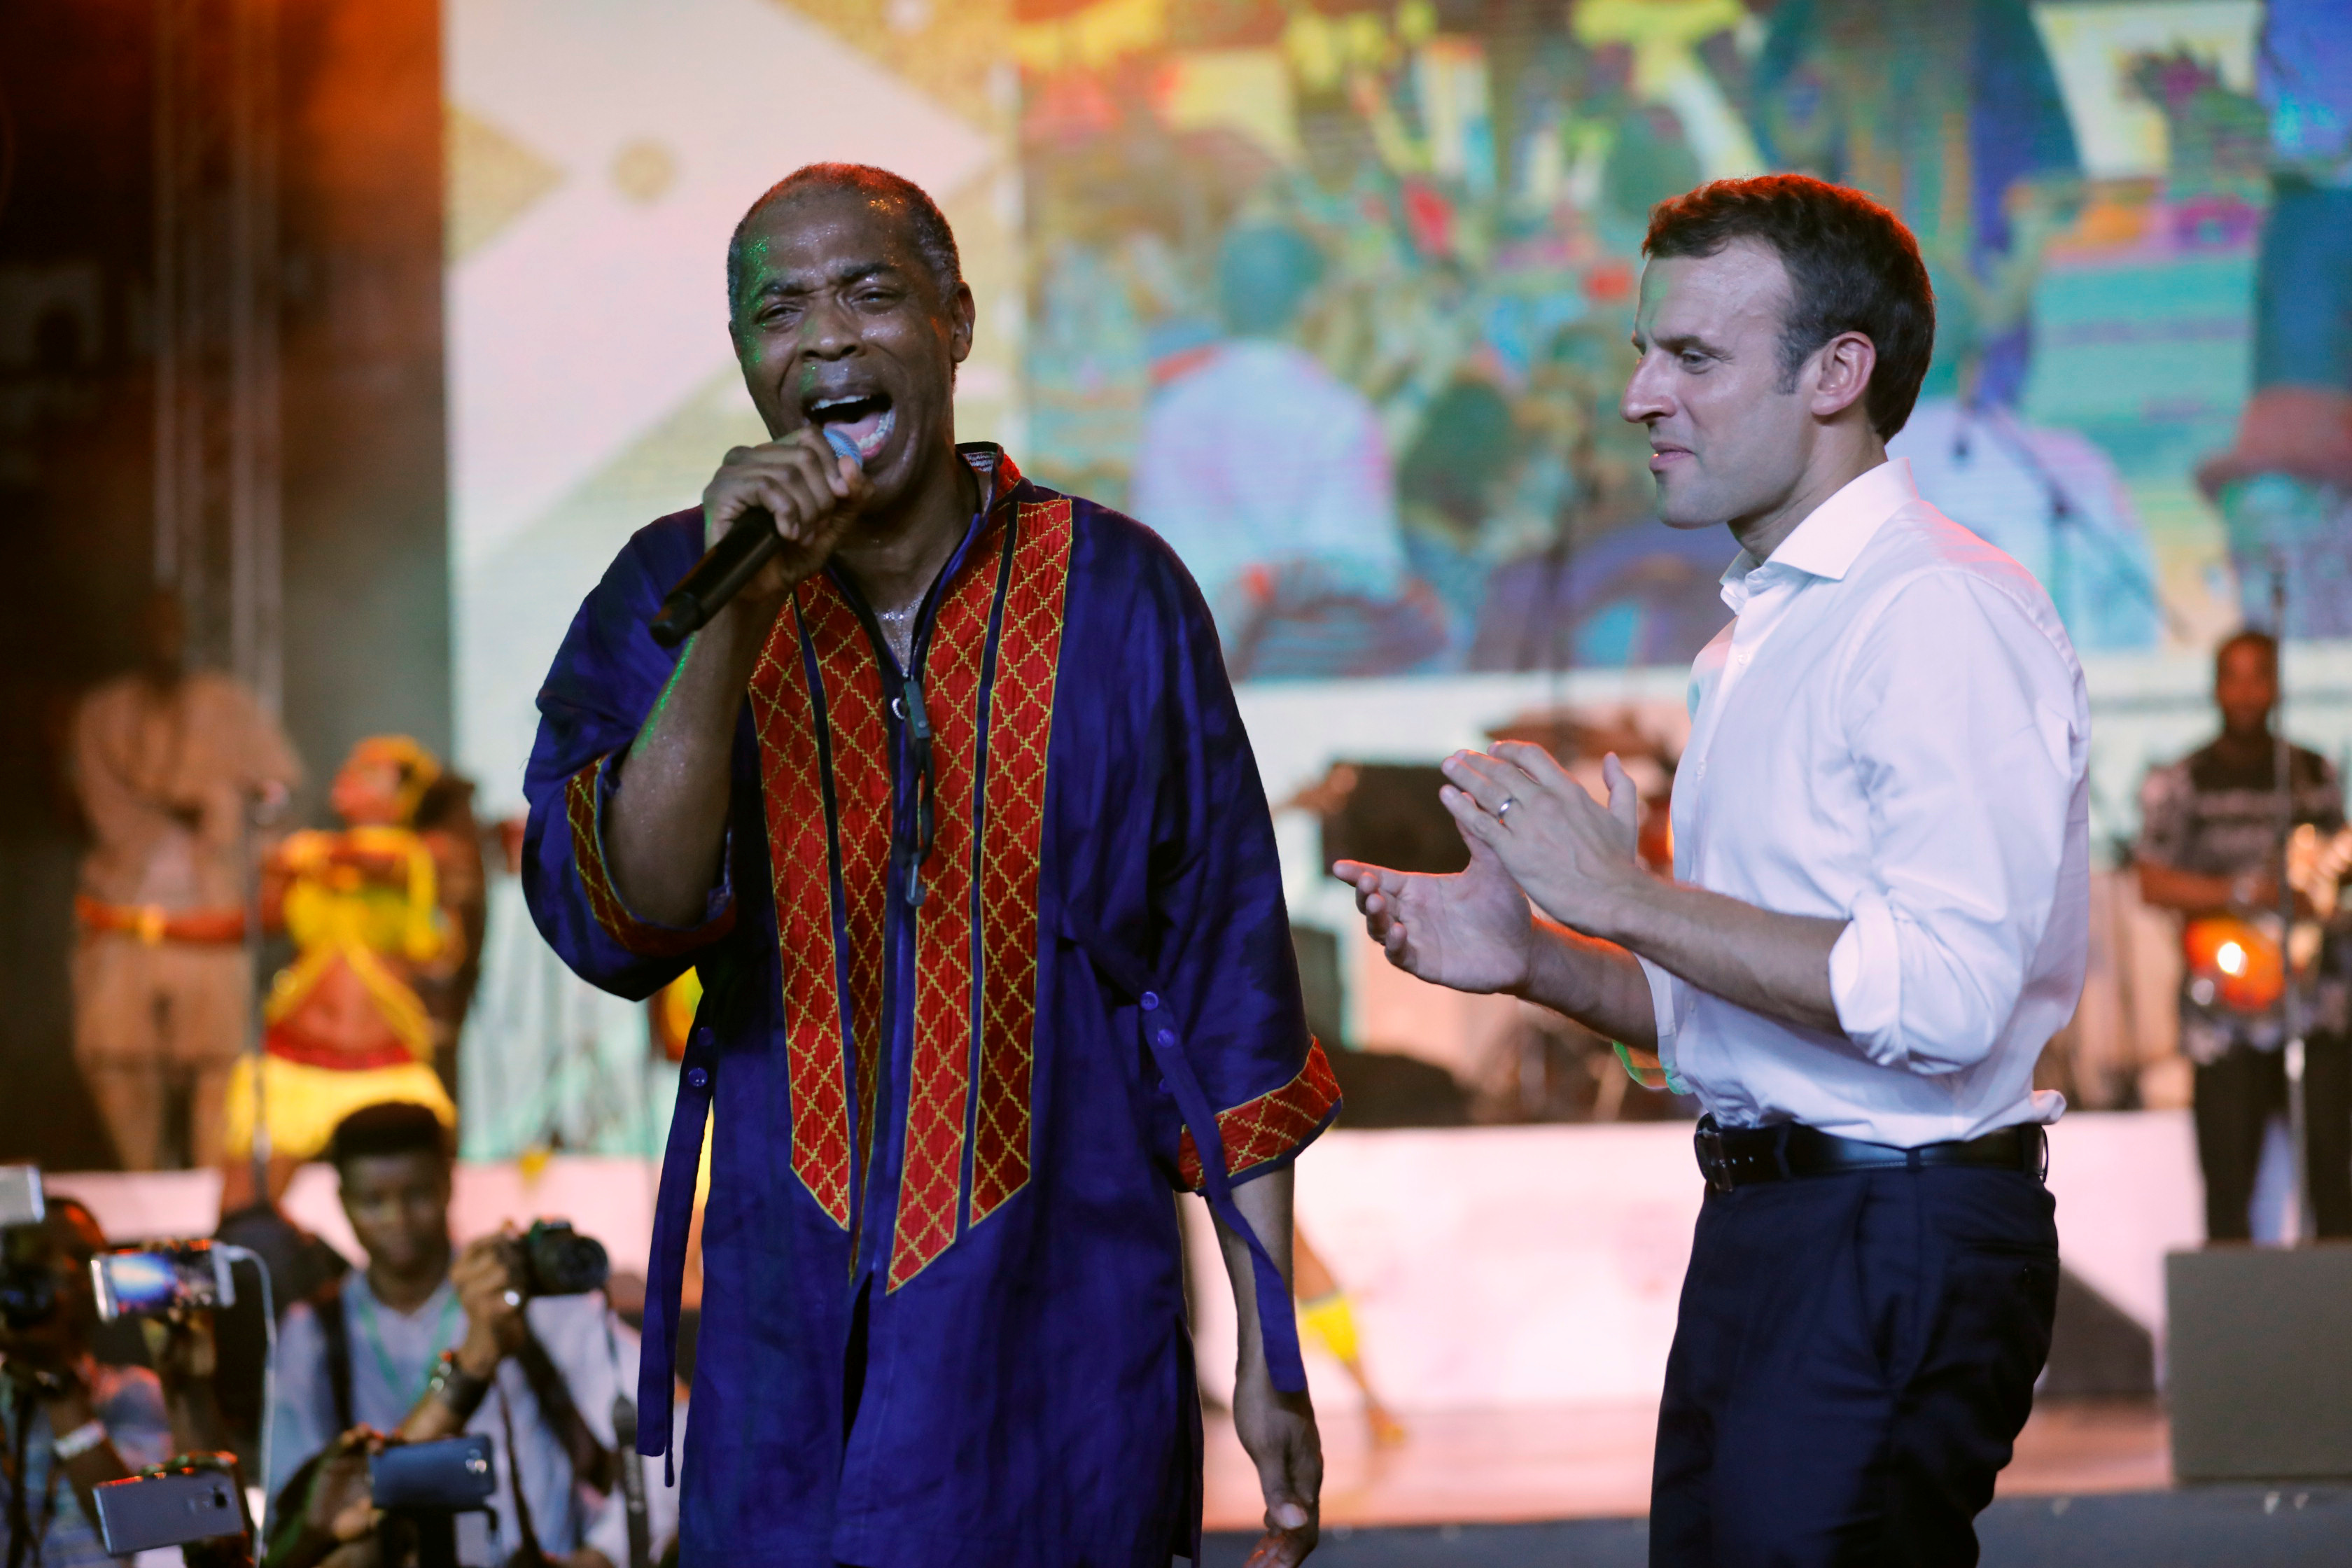 French President Emmanuel Macron (R) stands on stage as Nigerian musician Femi Kuti performs during Macron's visit to the Afrika Shrine nightclub in Nigeria's commercial capital Lagos, July 3, 2018.Picture taken July 3, 2018.